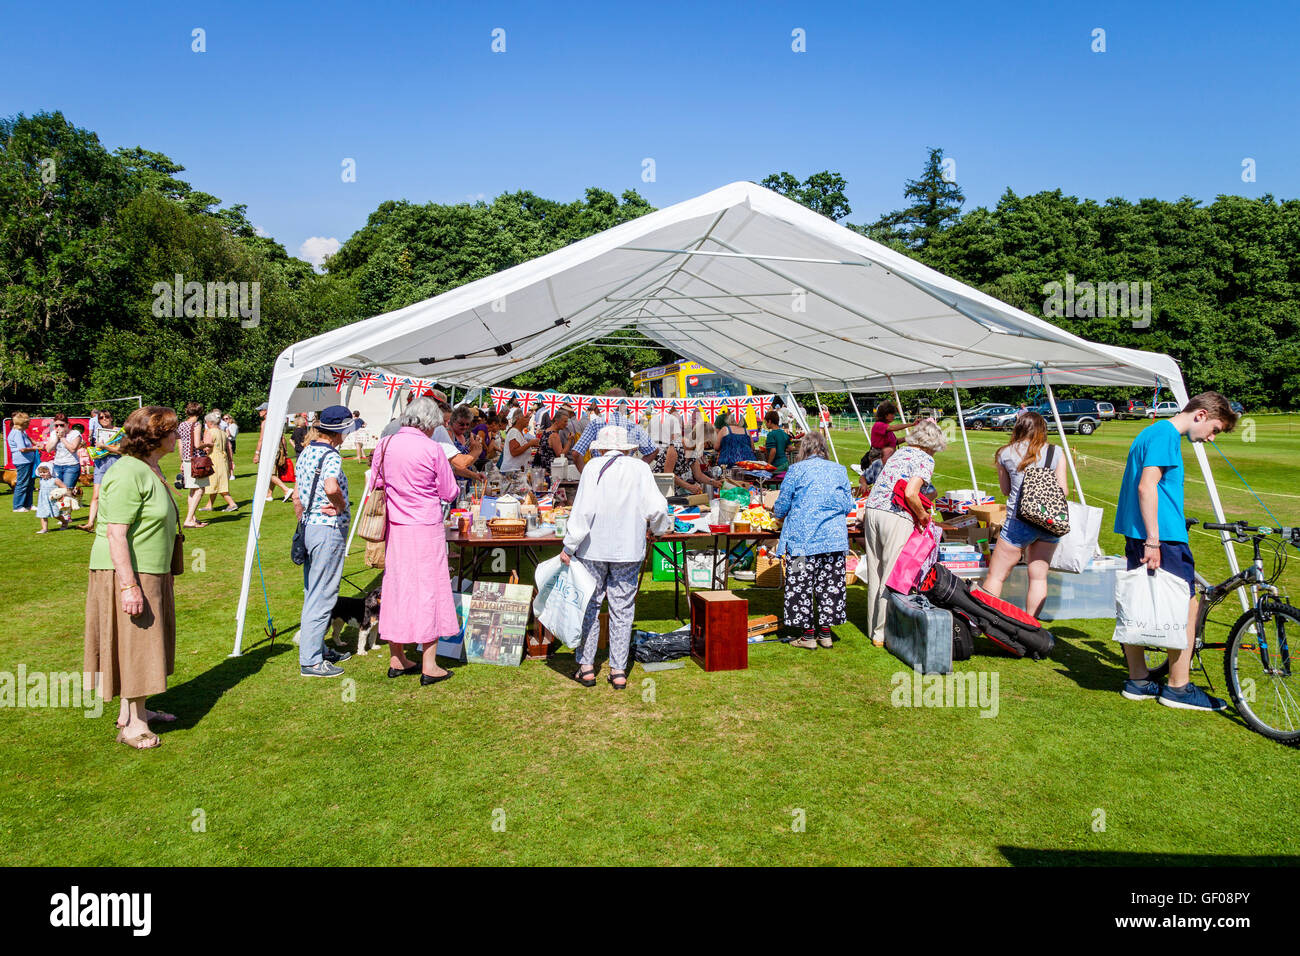 Local People Browsing/Buying From A Bric A Brac Stall, Withyham Fete, Withyham, Sussex, UK - Stock Image